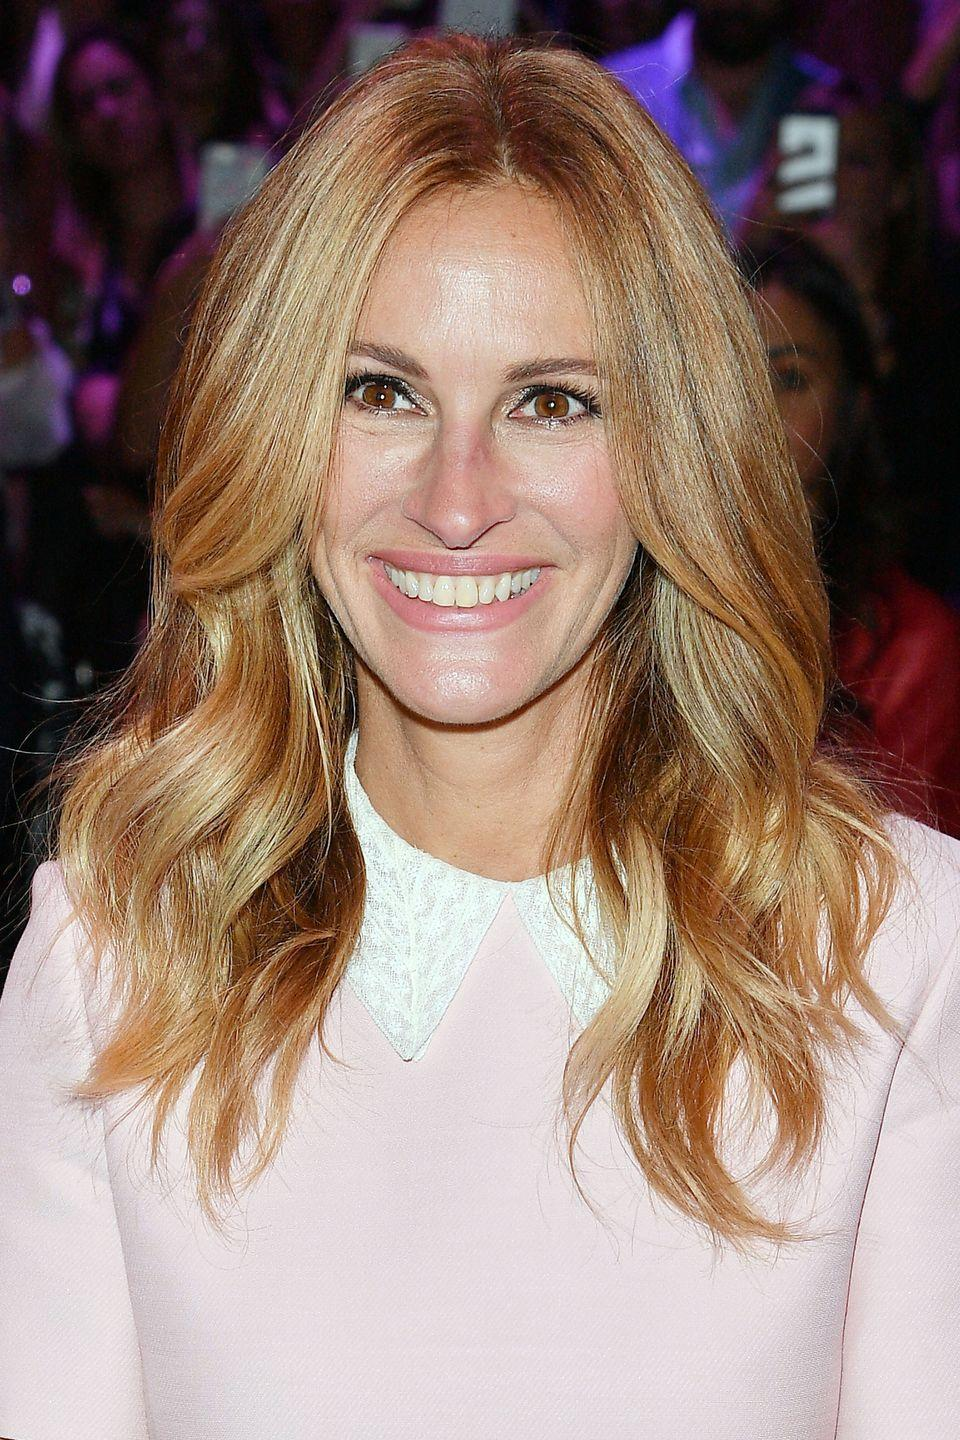 """<p>Although Julia Roberts has done a lot of experimenting with her hair over the years, she has stuck to a flattering golden-blonde <a href=""""http://www.goodhousekeeping.com/beauty/hair/g3279/balayage-hair-color/"""" rel=""""nofollow noopener"""" target=""""_blank"""" data-ylk=""""slk:balayage"""" class=""""link rapid-noclick-resp"""">balayage</a> with loose waves more recently. </p>"""